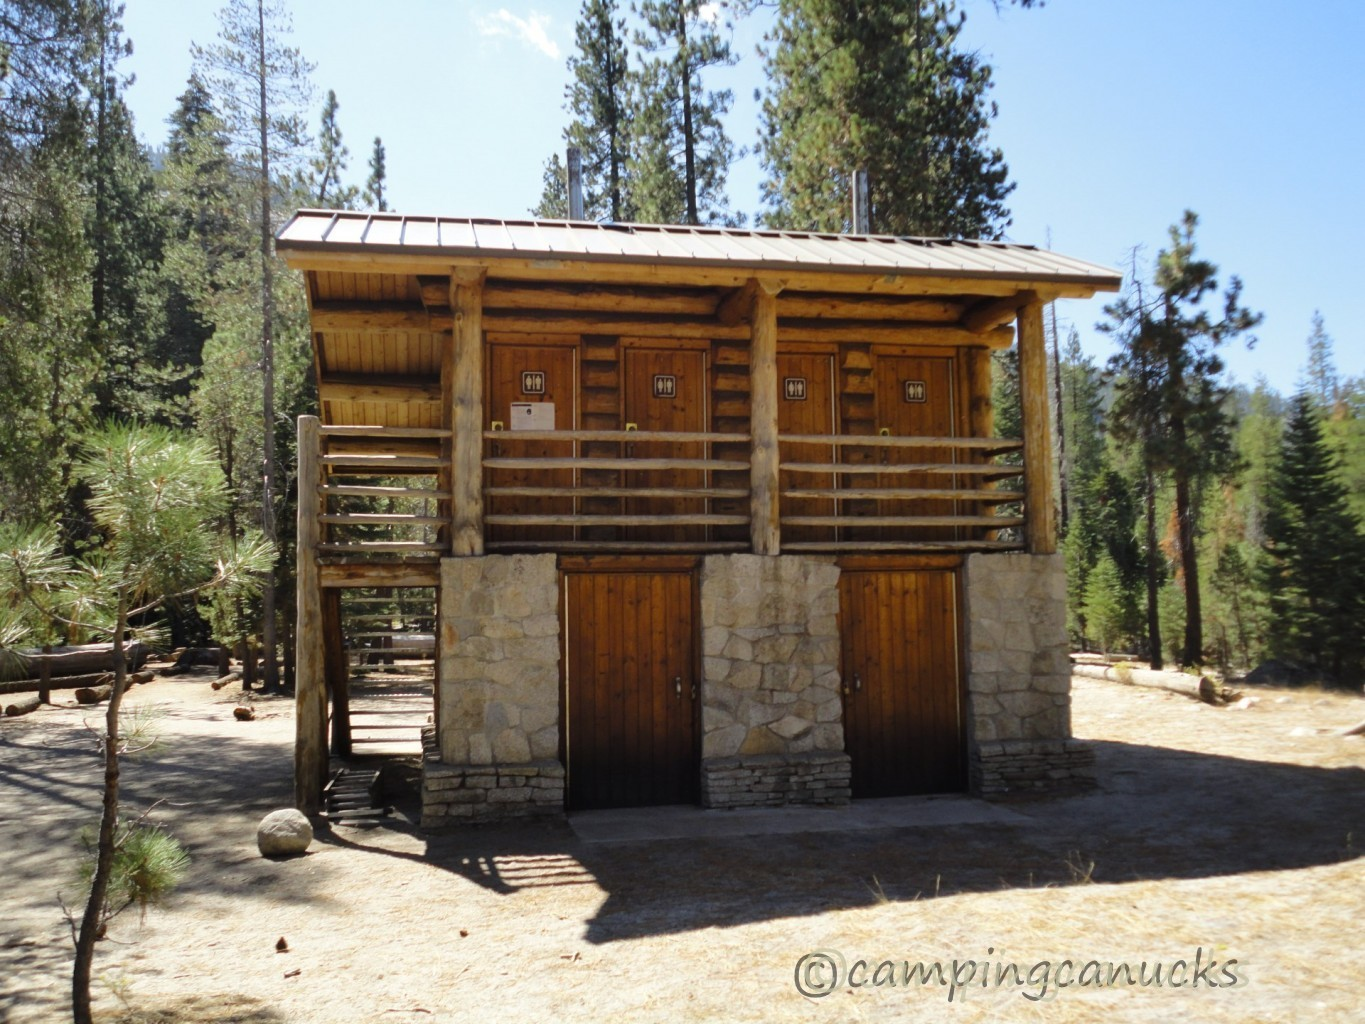 The Hilton of backcountry outhouses!